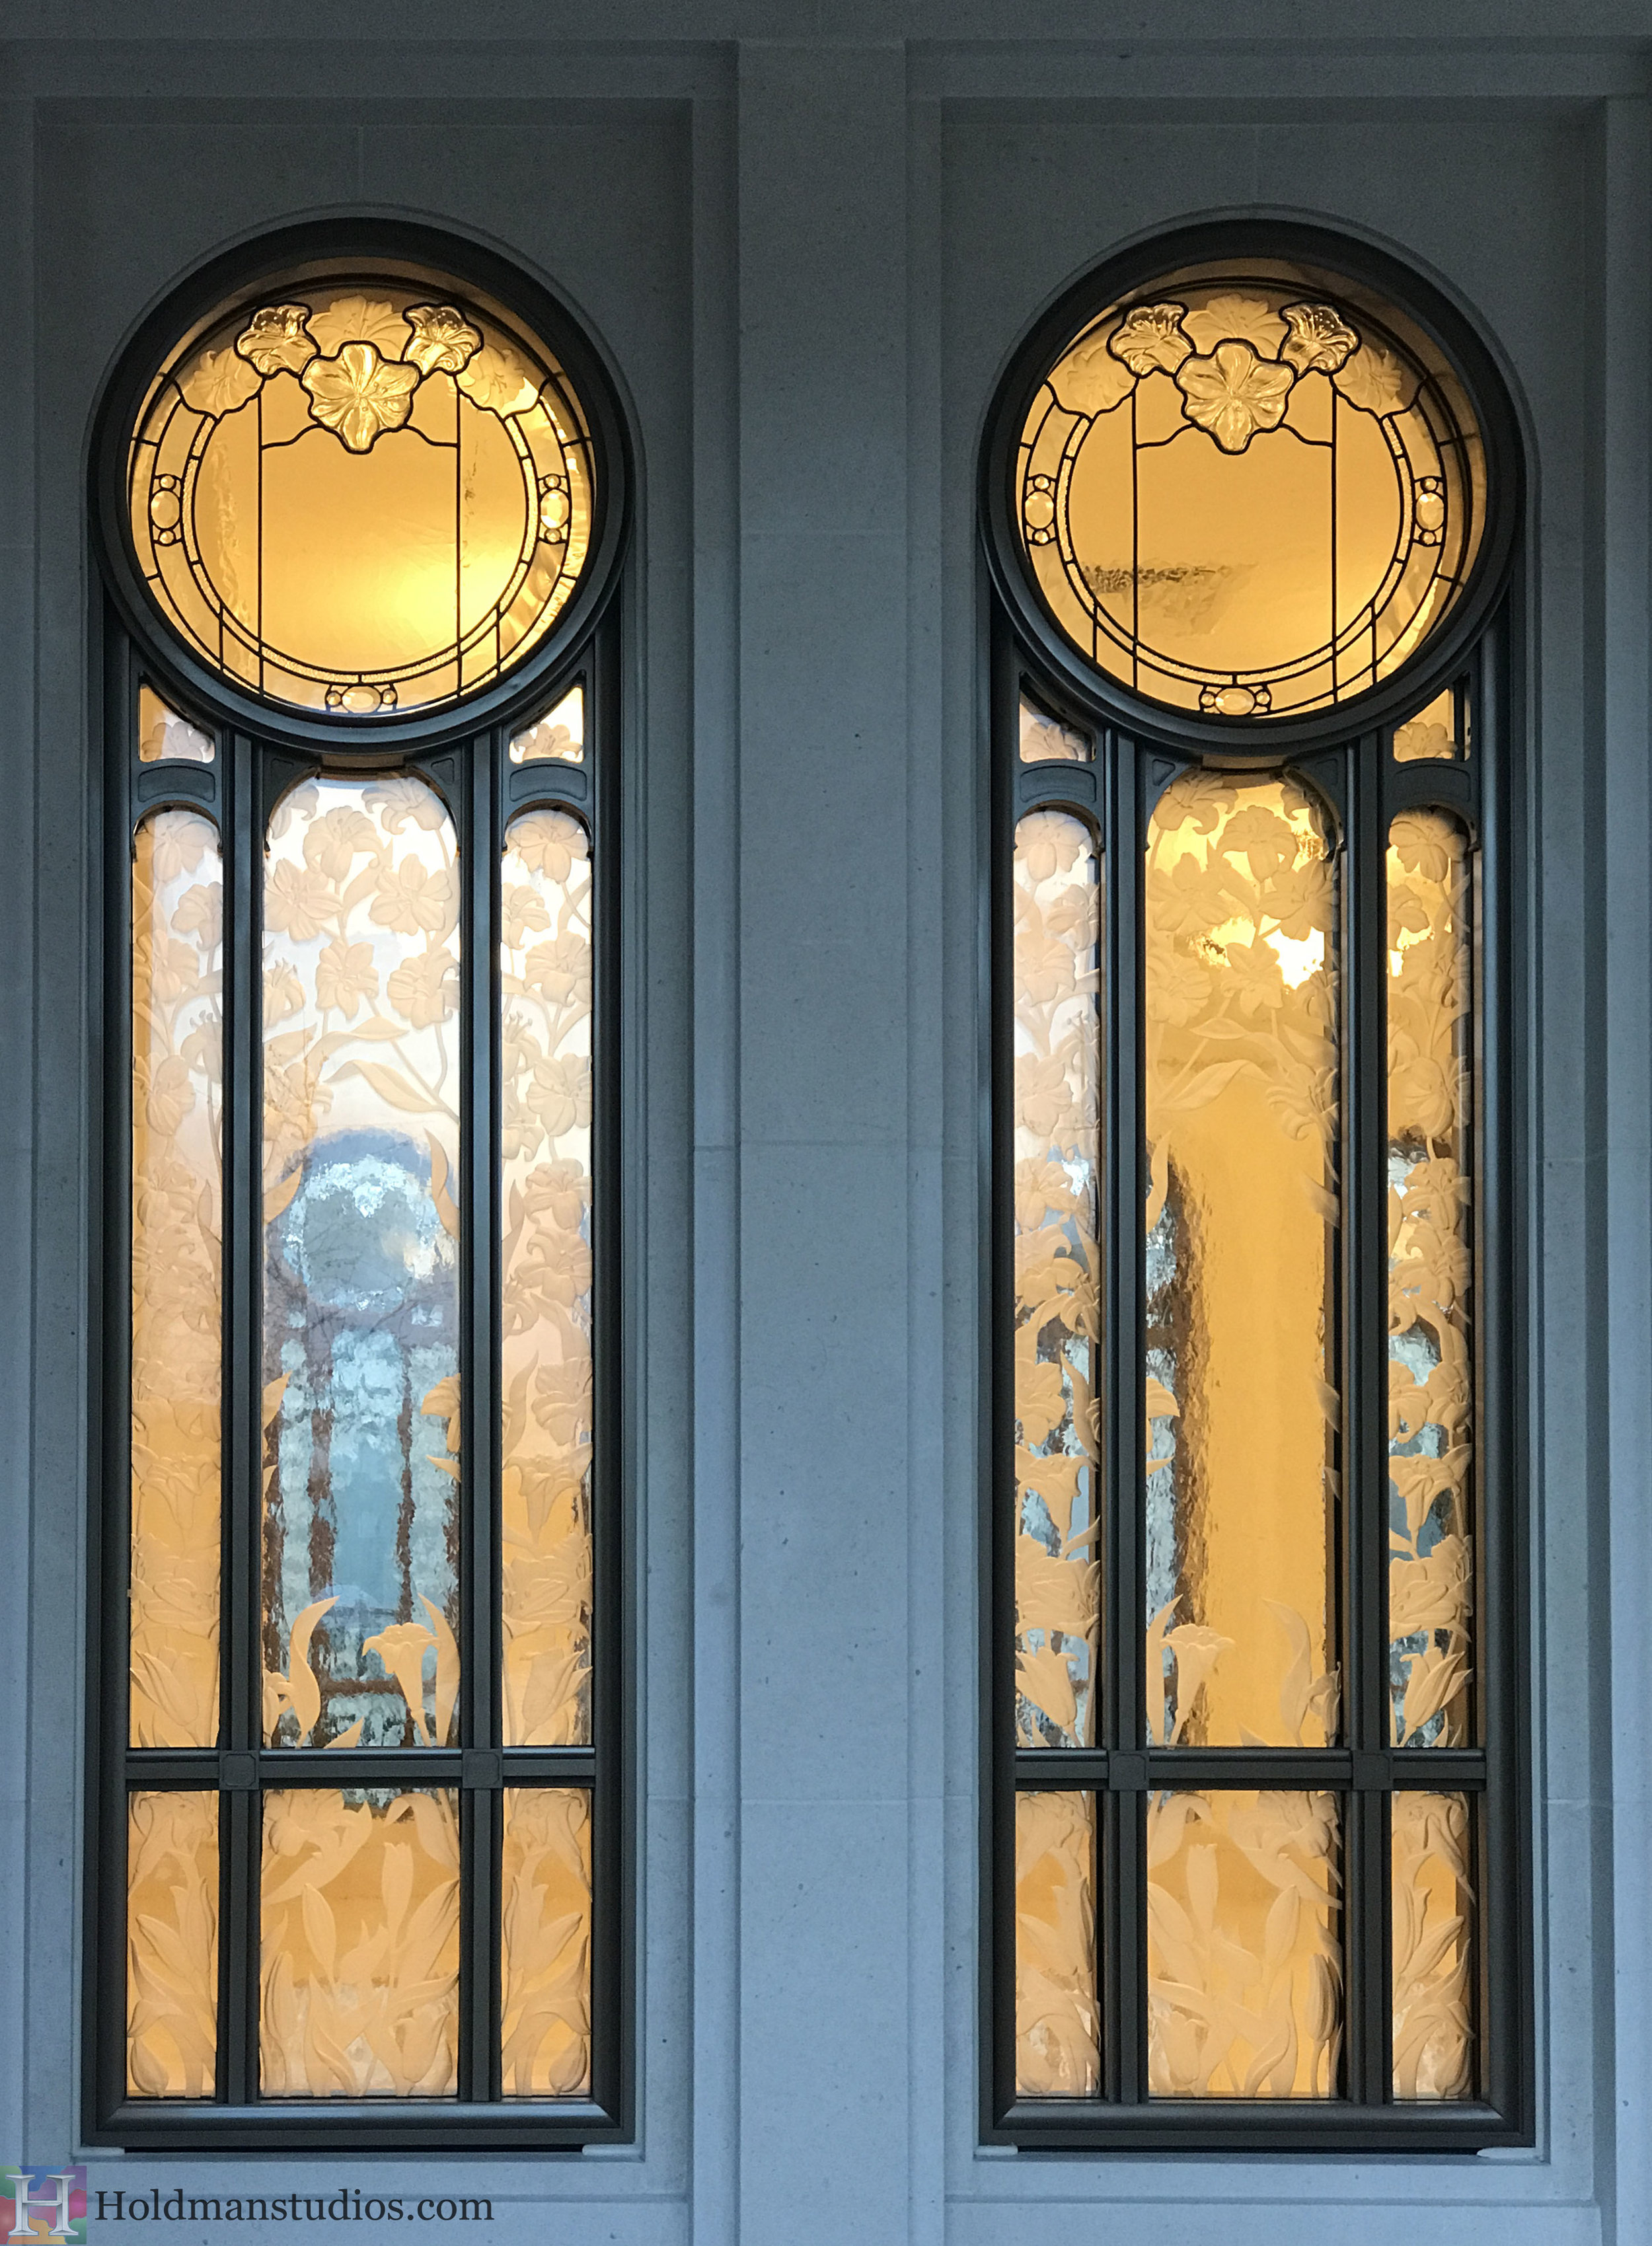 Holdman-Studios-Stained-Etched-Cast-Glass-Paris-LDS-Temple-Martagon-Madonna-Lily-Flowers-Leaves-Window-Outside.jpg